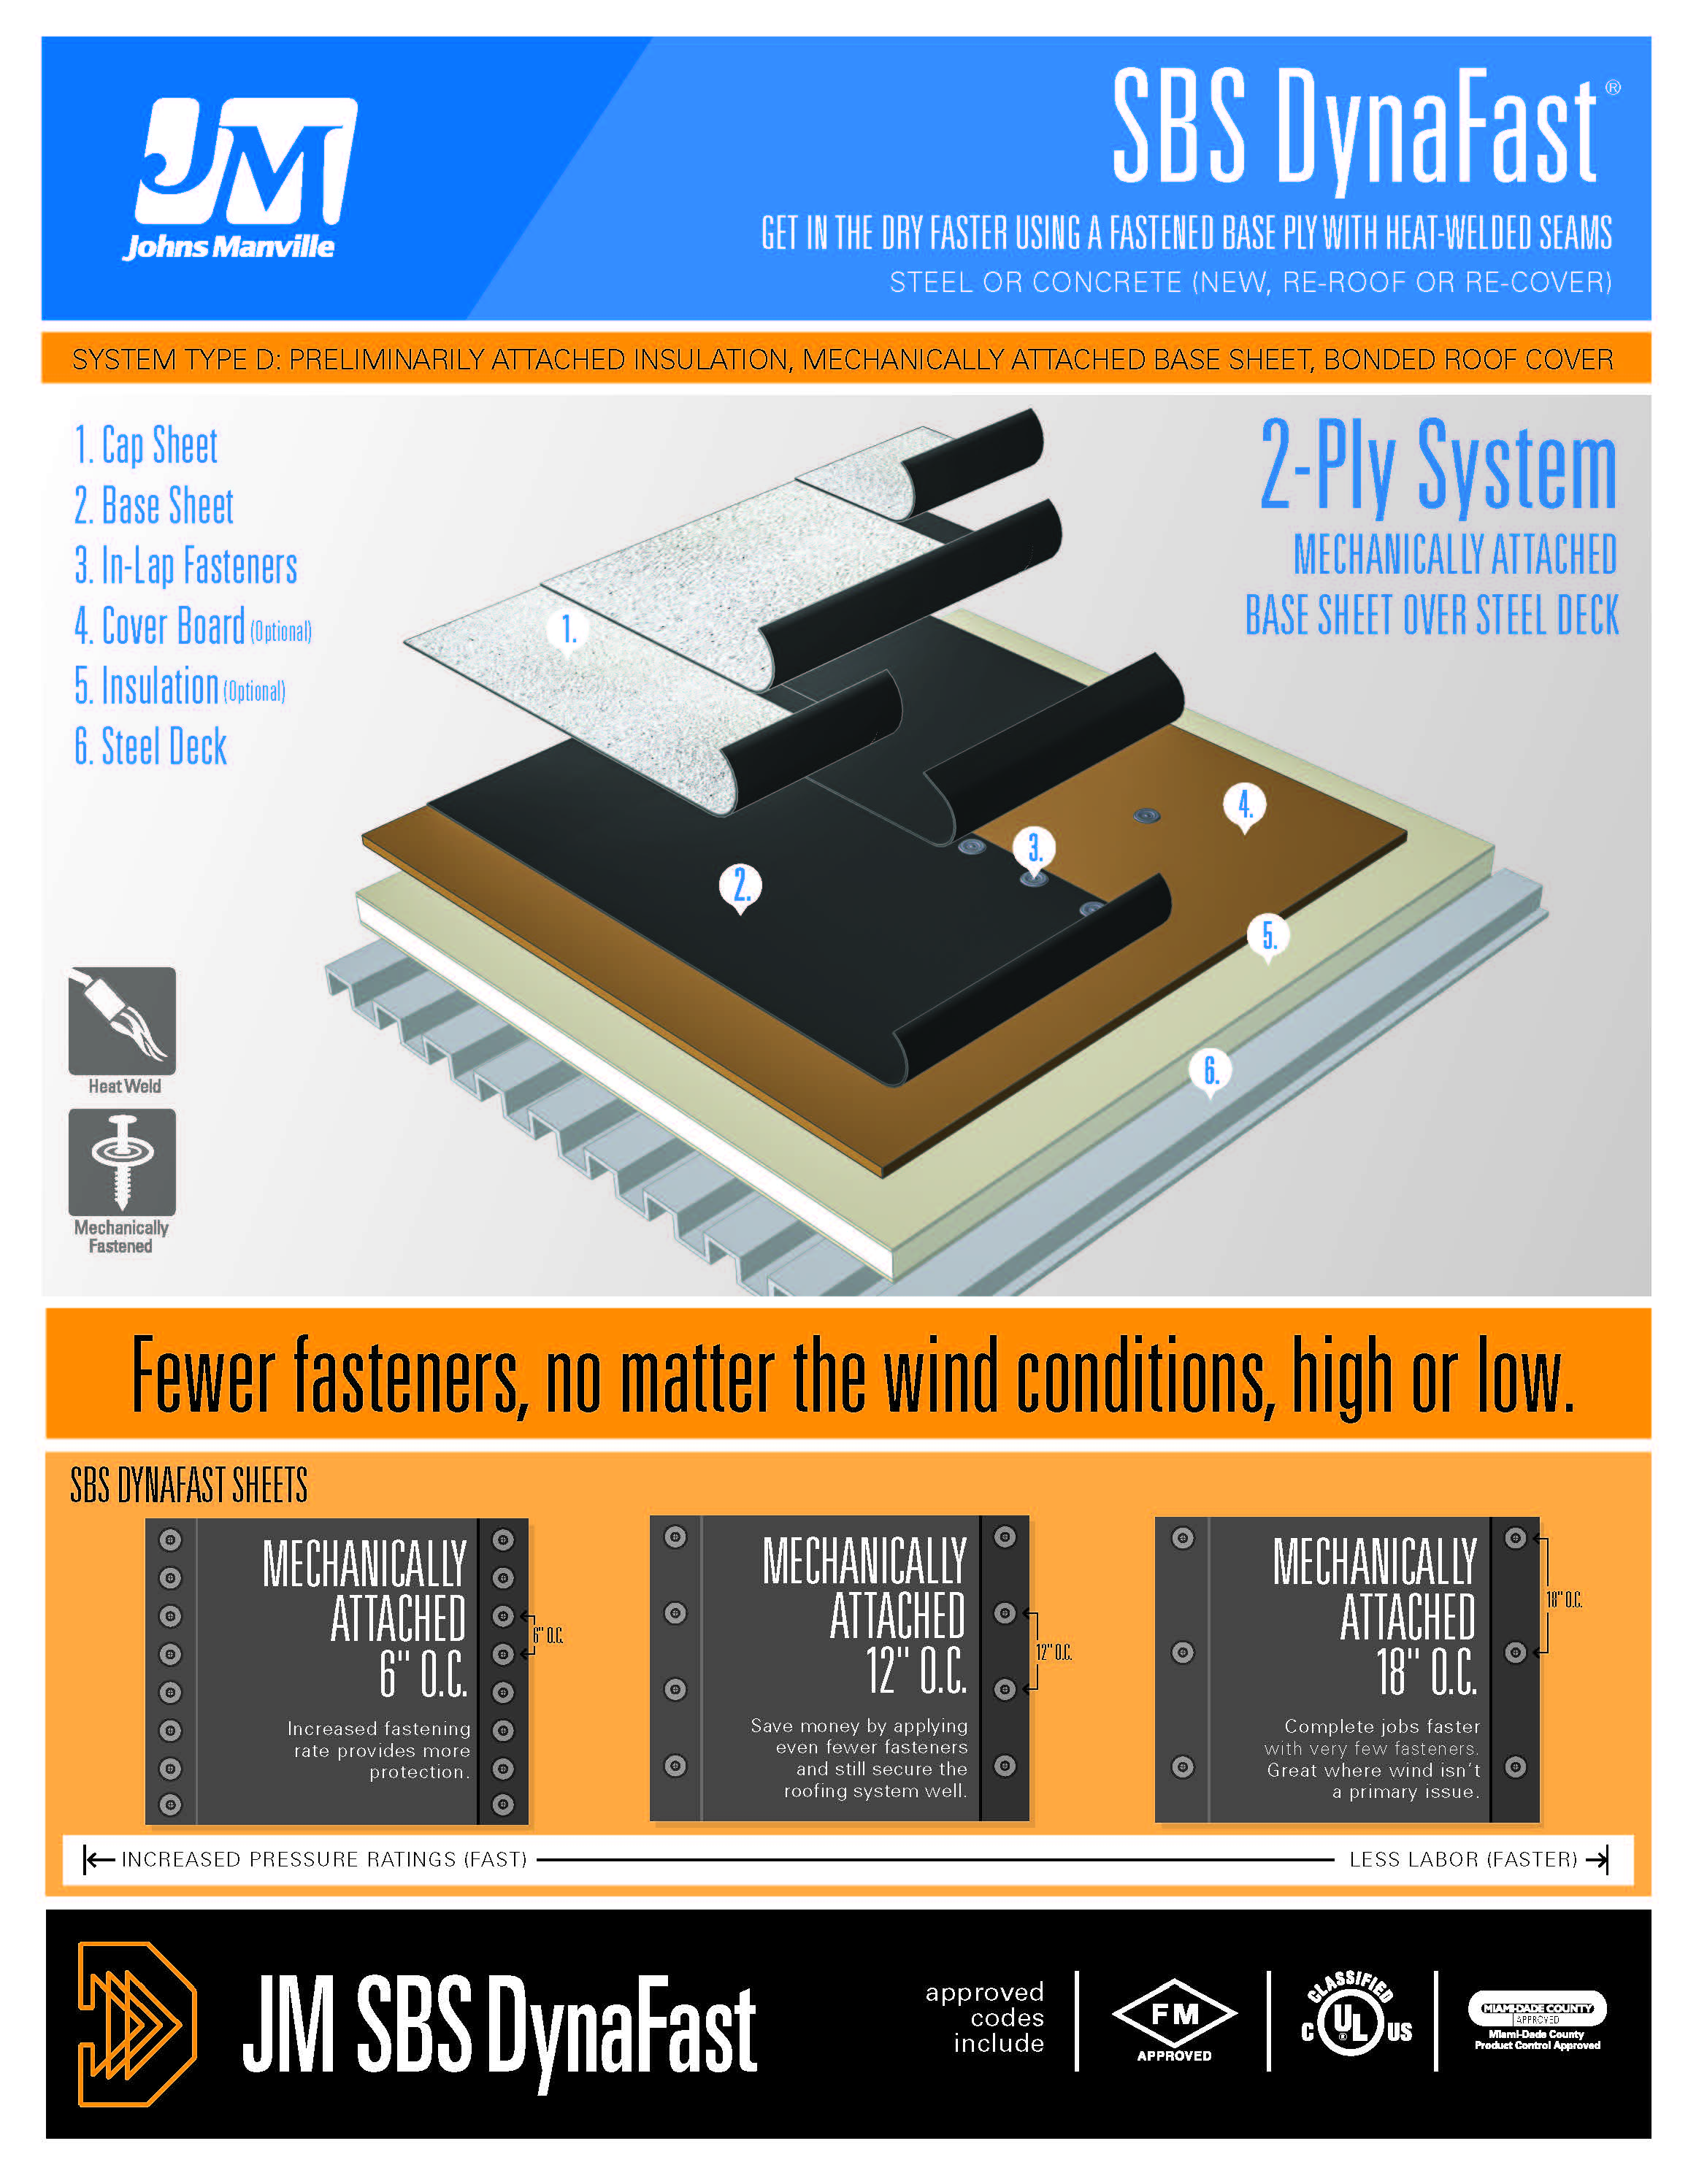 SBS DynaFast - Steel or Concrete (New, Re-roof or Re-cover)